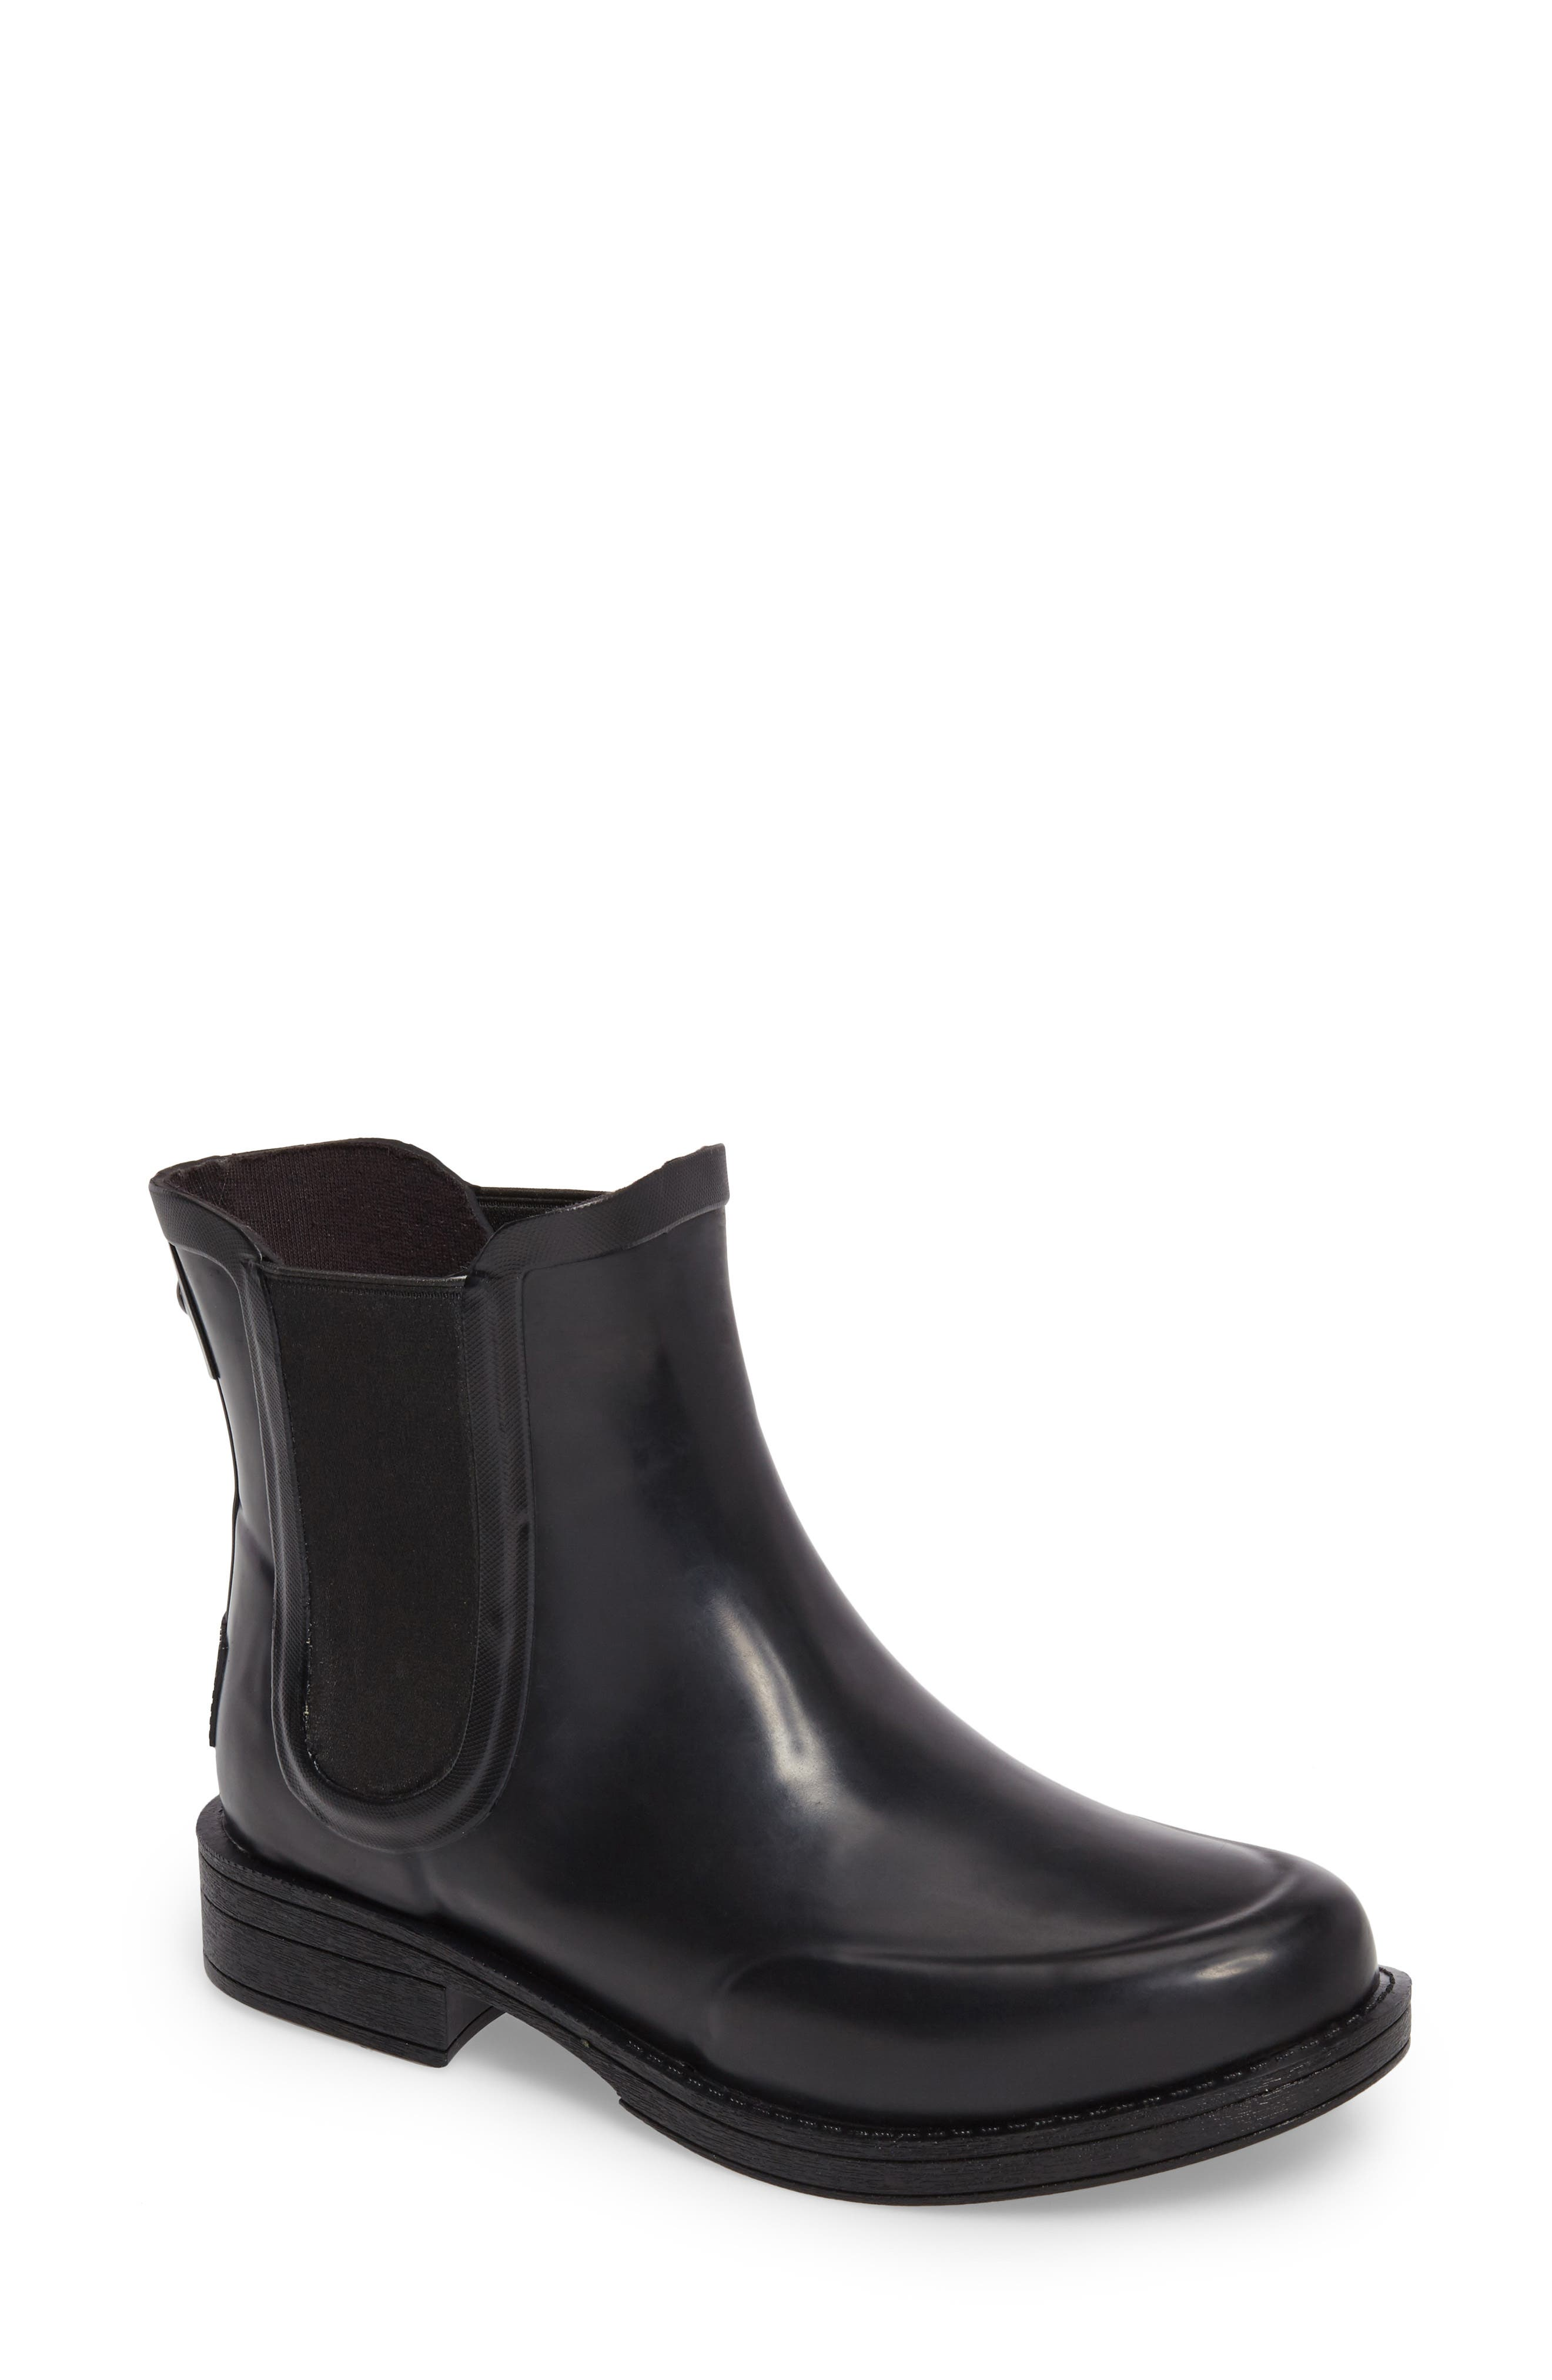 Aviana Chelsea Rain Boot,                         Main,                         color, 001